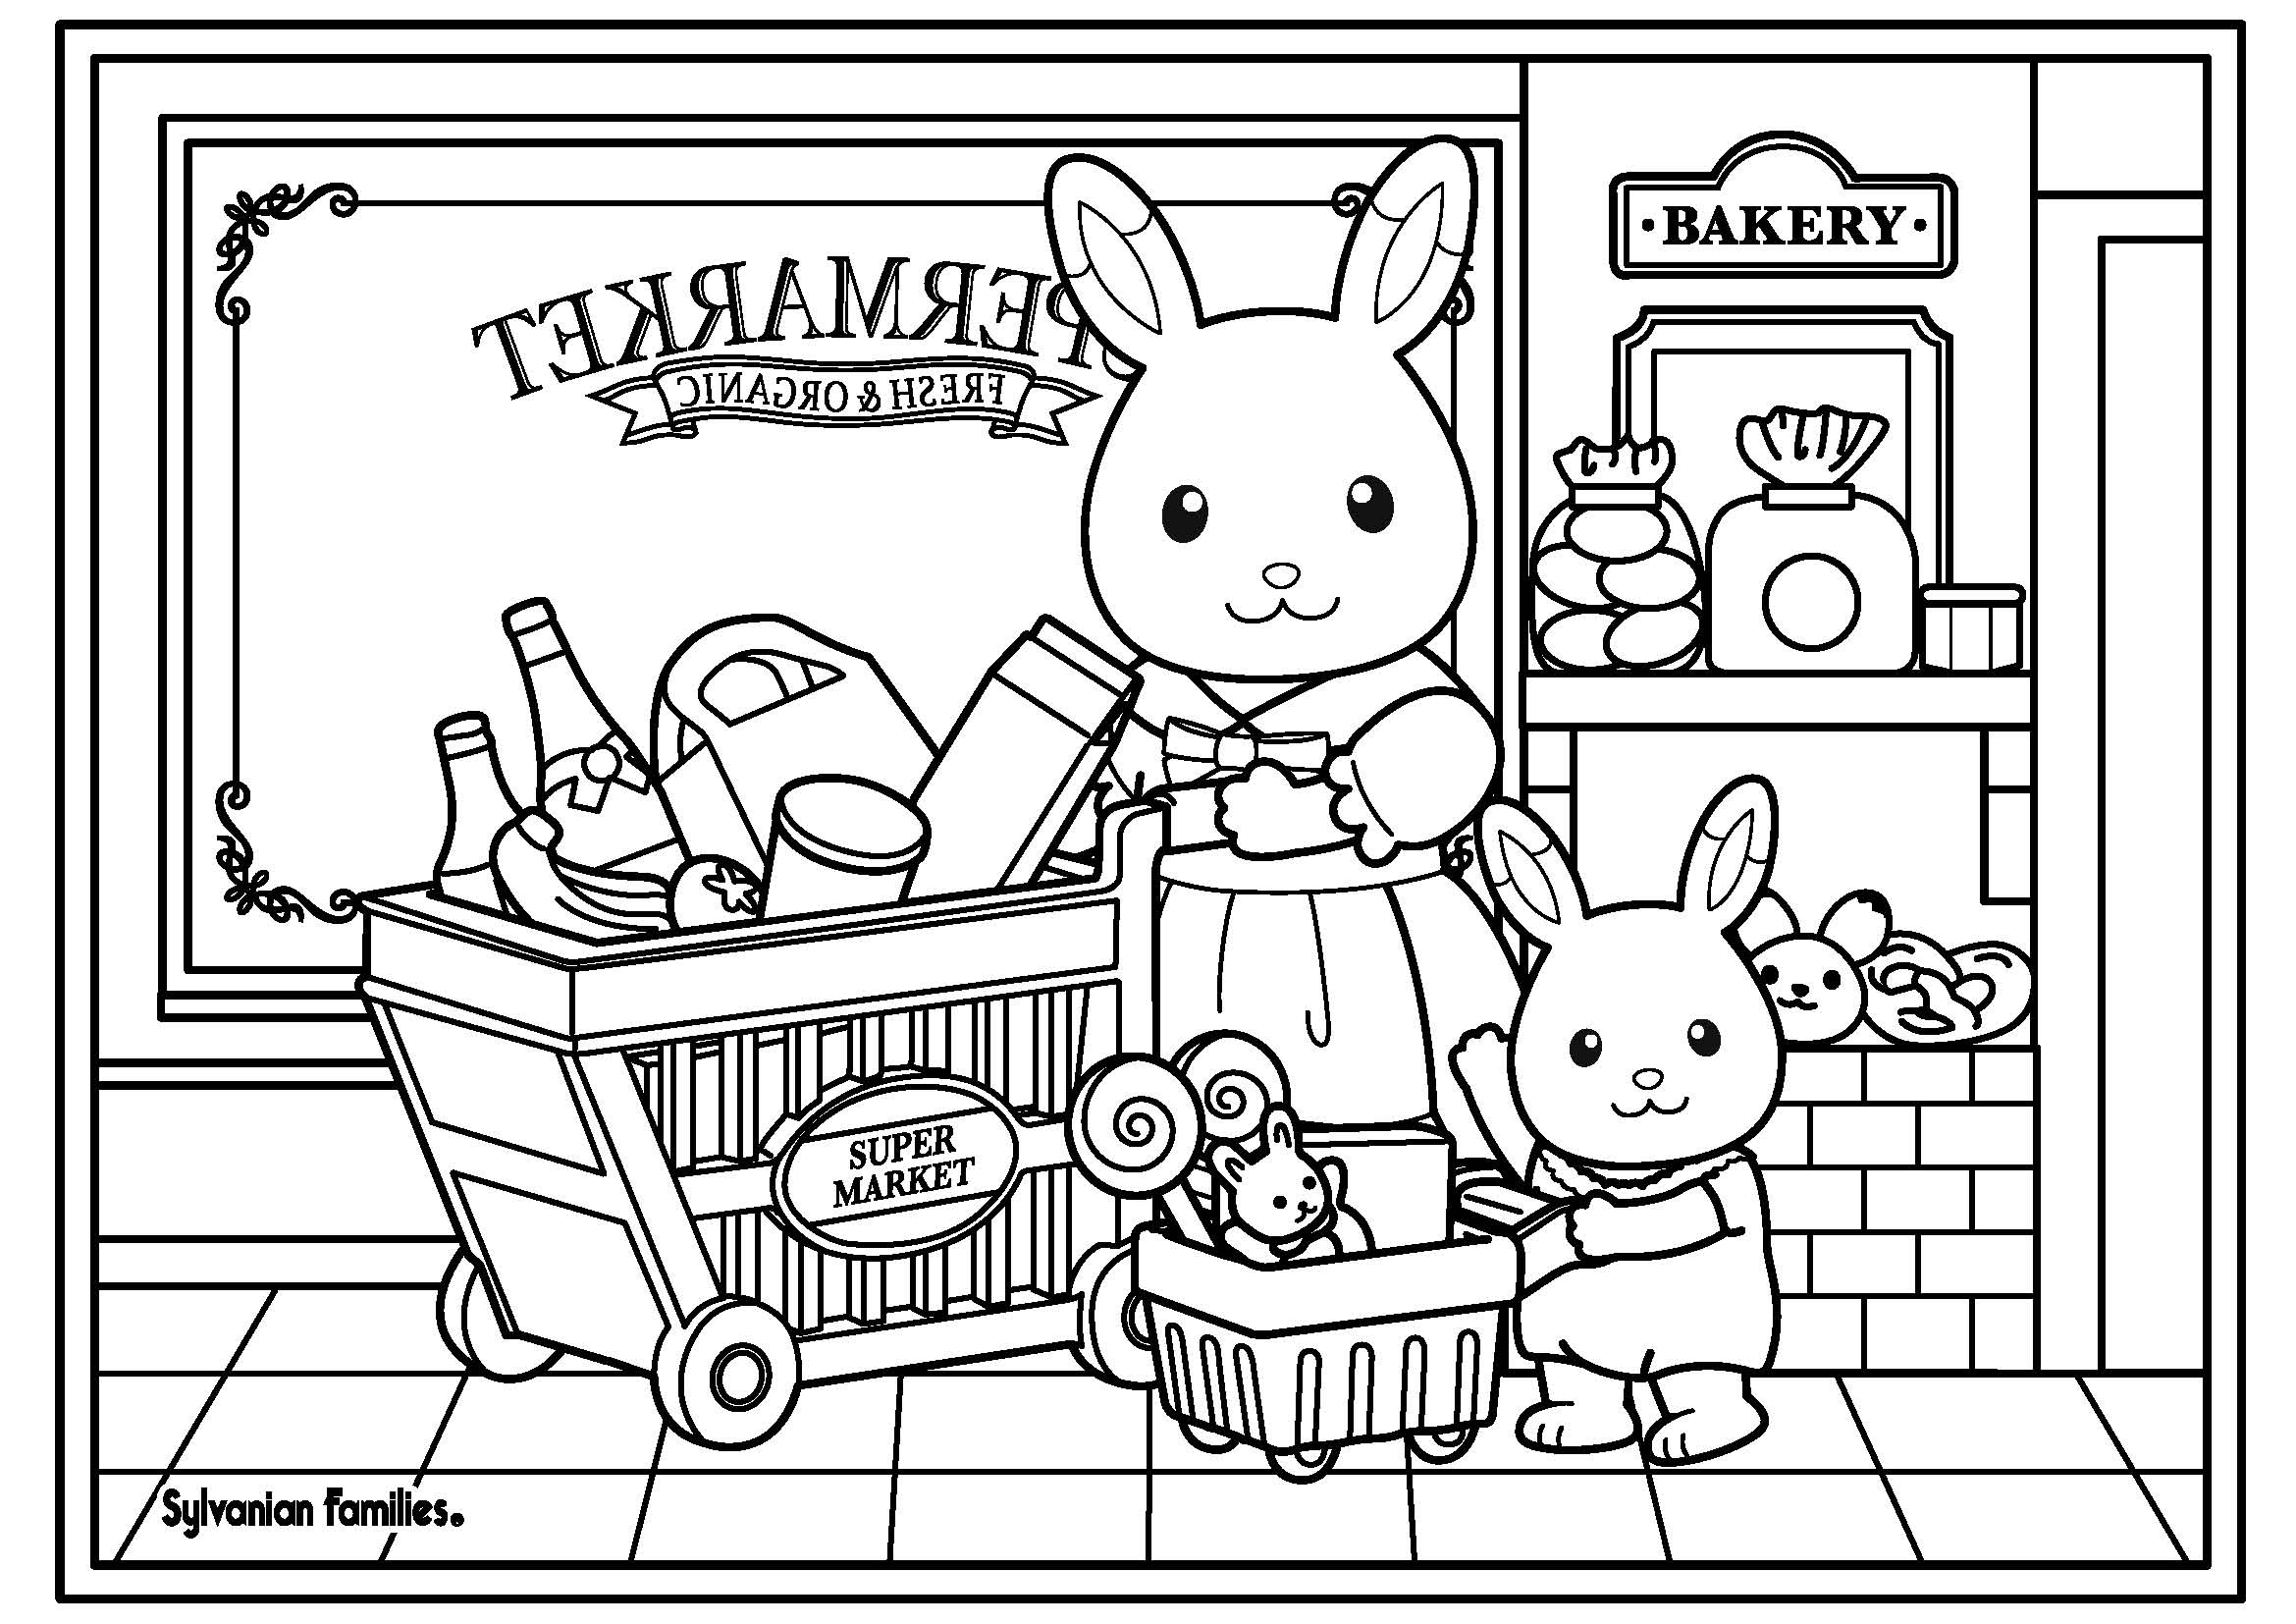 calico critters coloring pages printable - photo#3